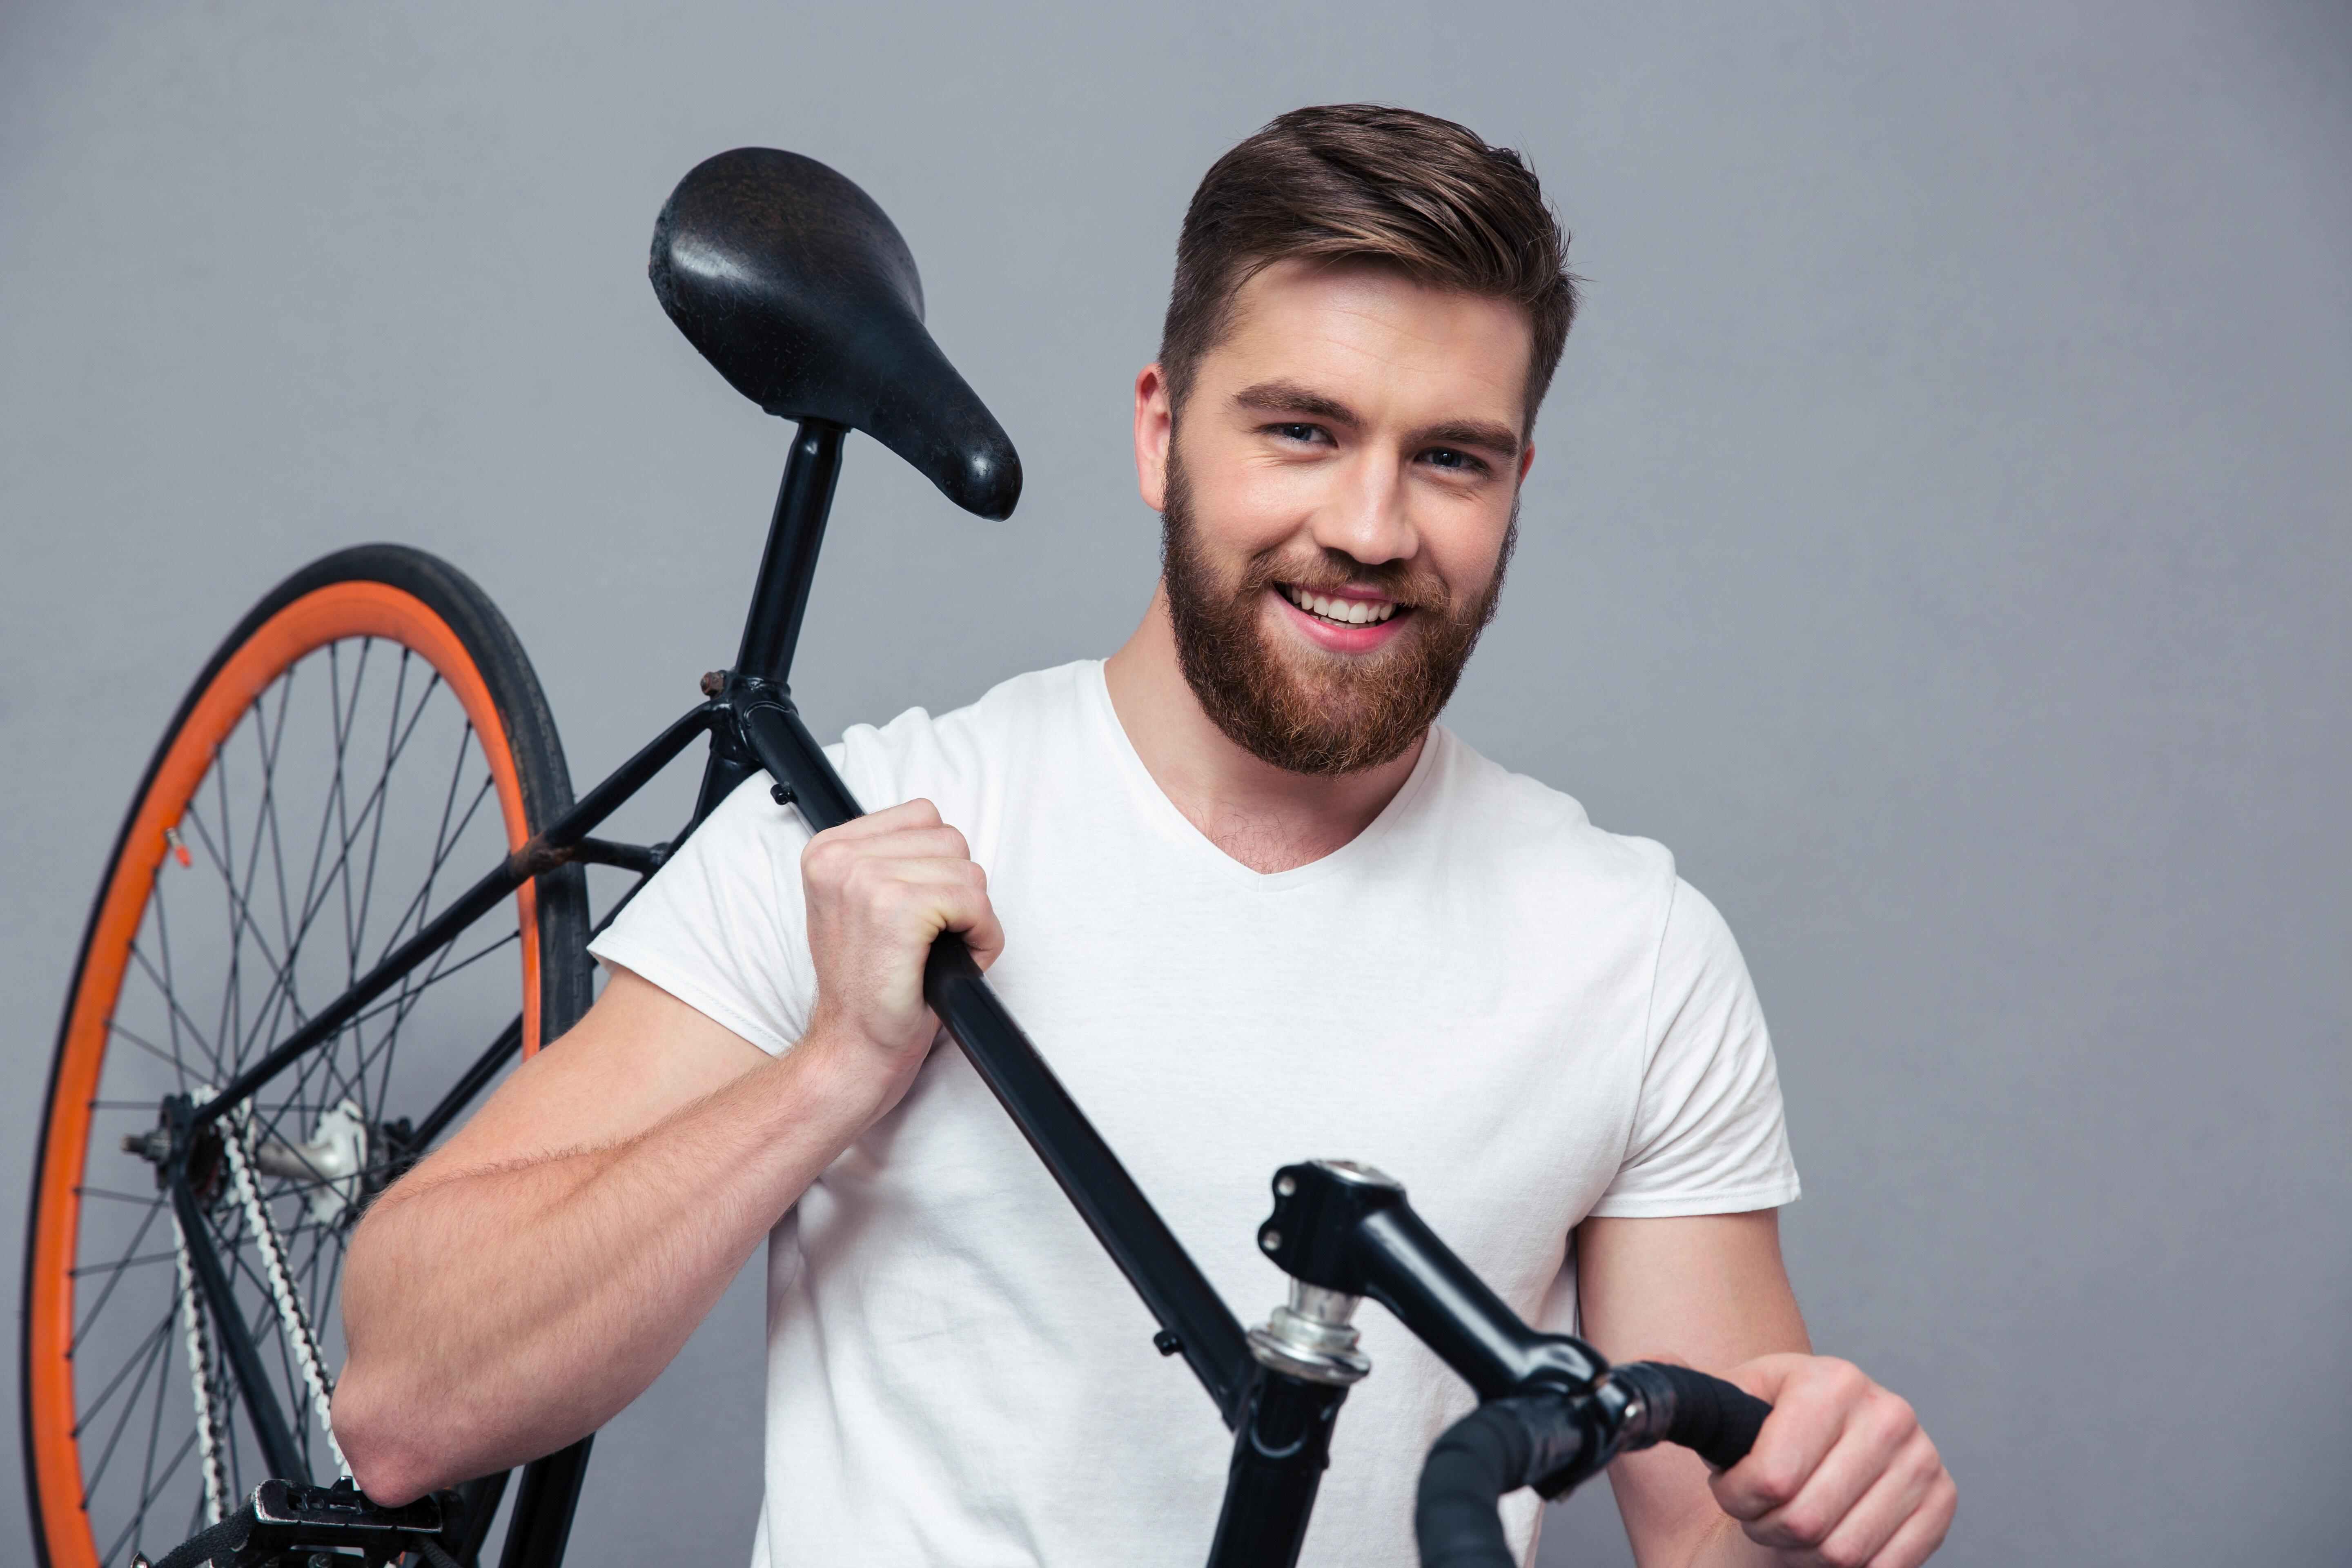 Smiling casual man holding bicycle on the shouder